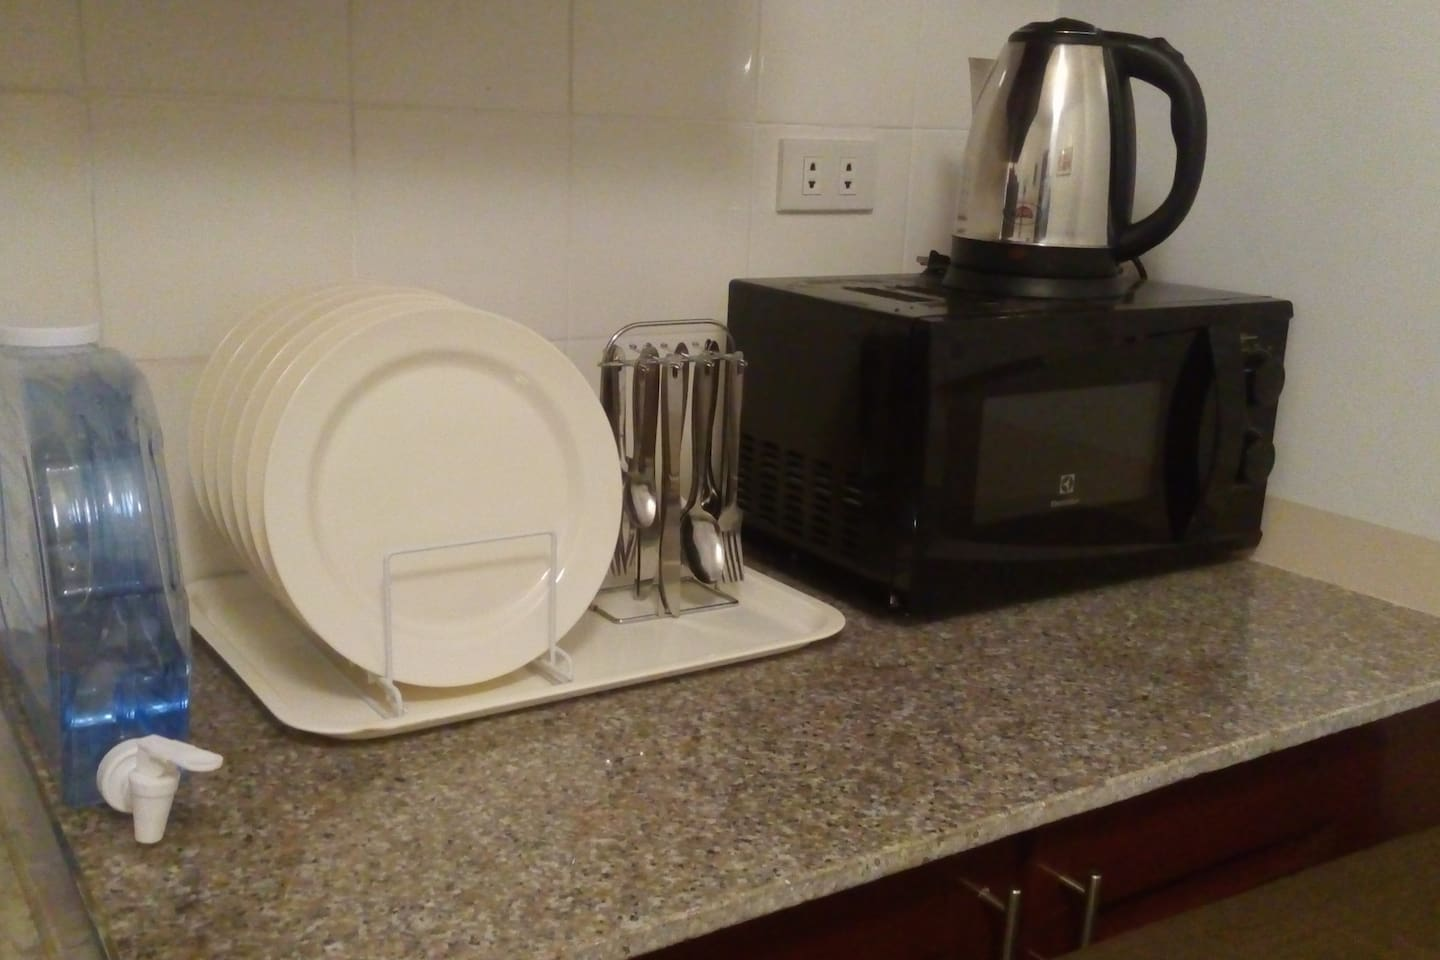 Microwave oven, electric kettle, dining utensils and refrigerator are all provided